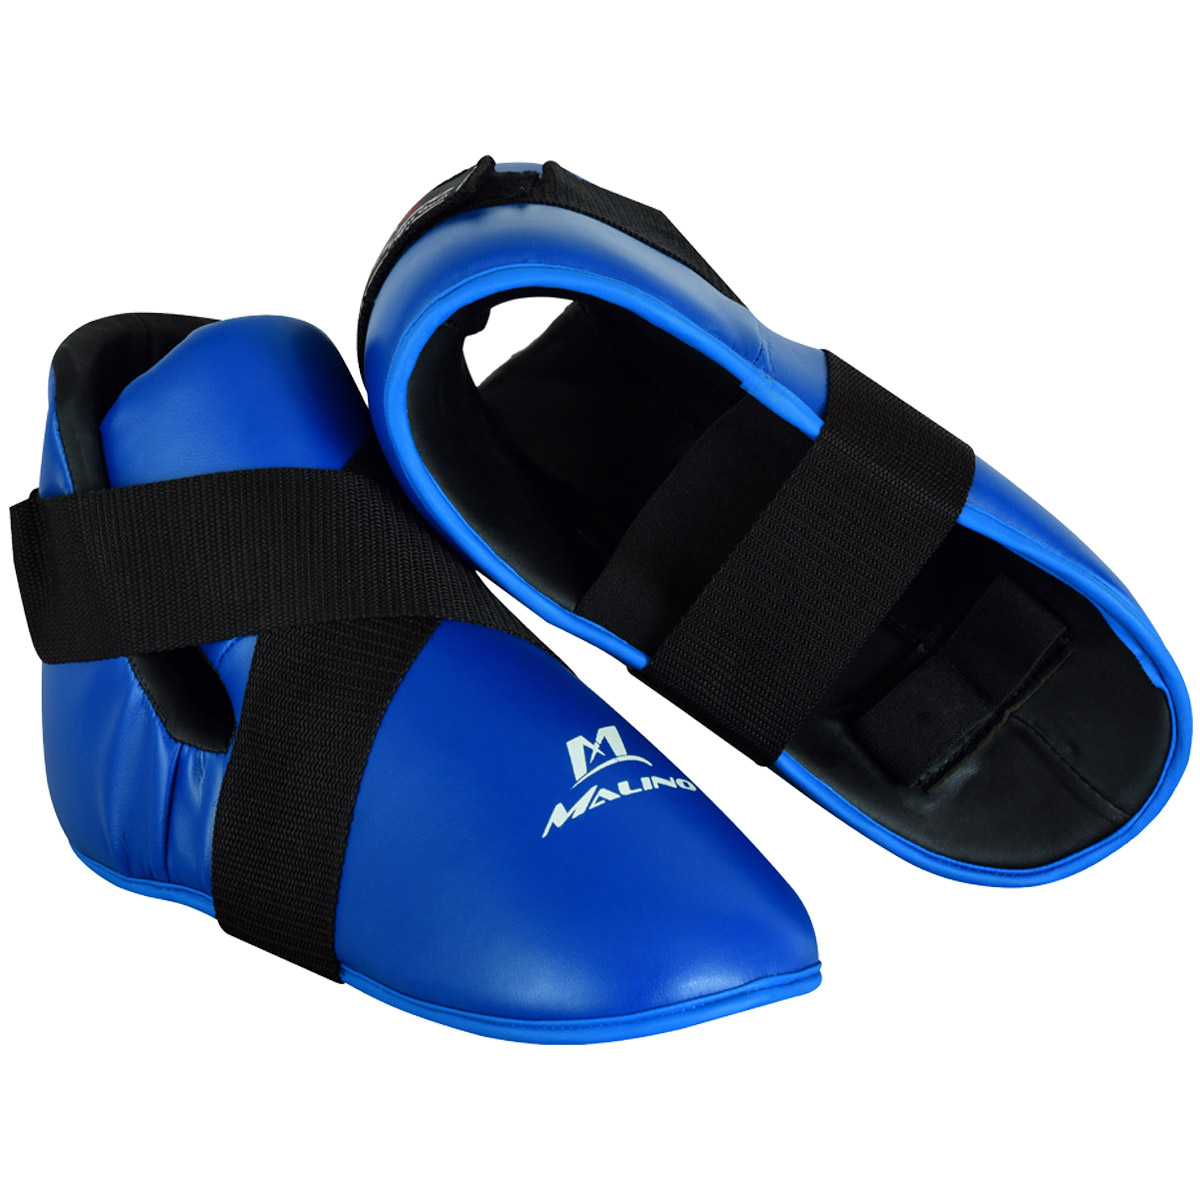 Malino Blue Foot Protector Karate Shoes